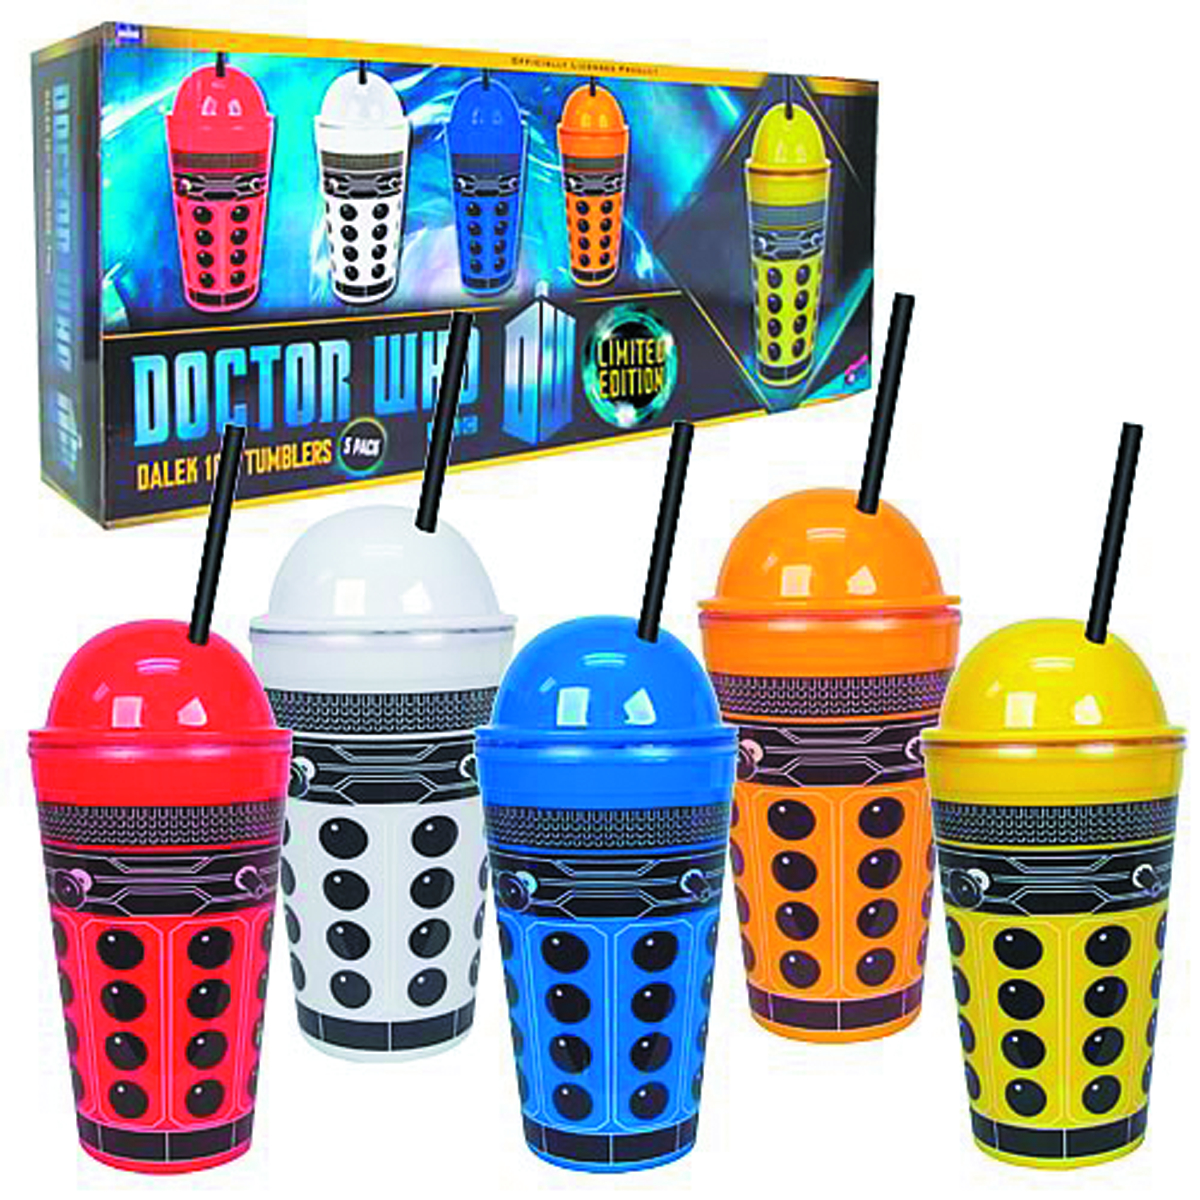 DOCTOR WHO DALEK 16OZ TUMBLER 5-PACK